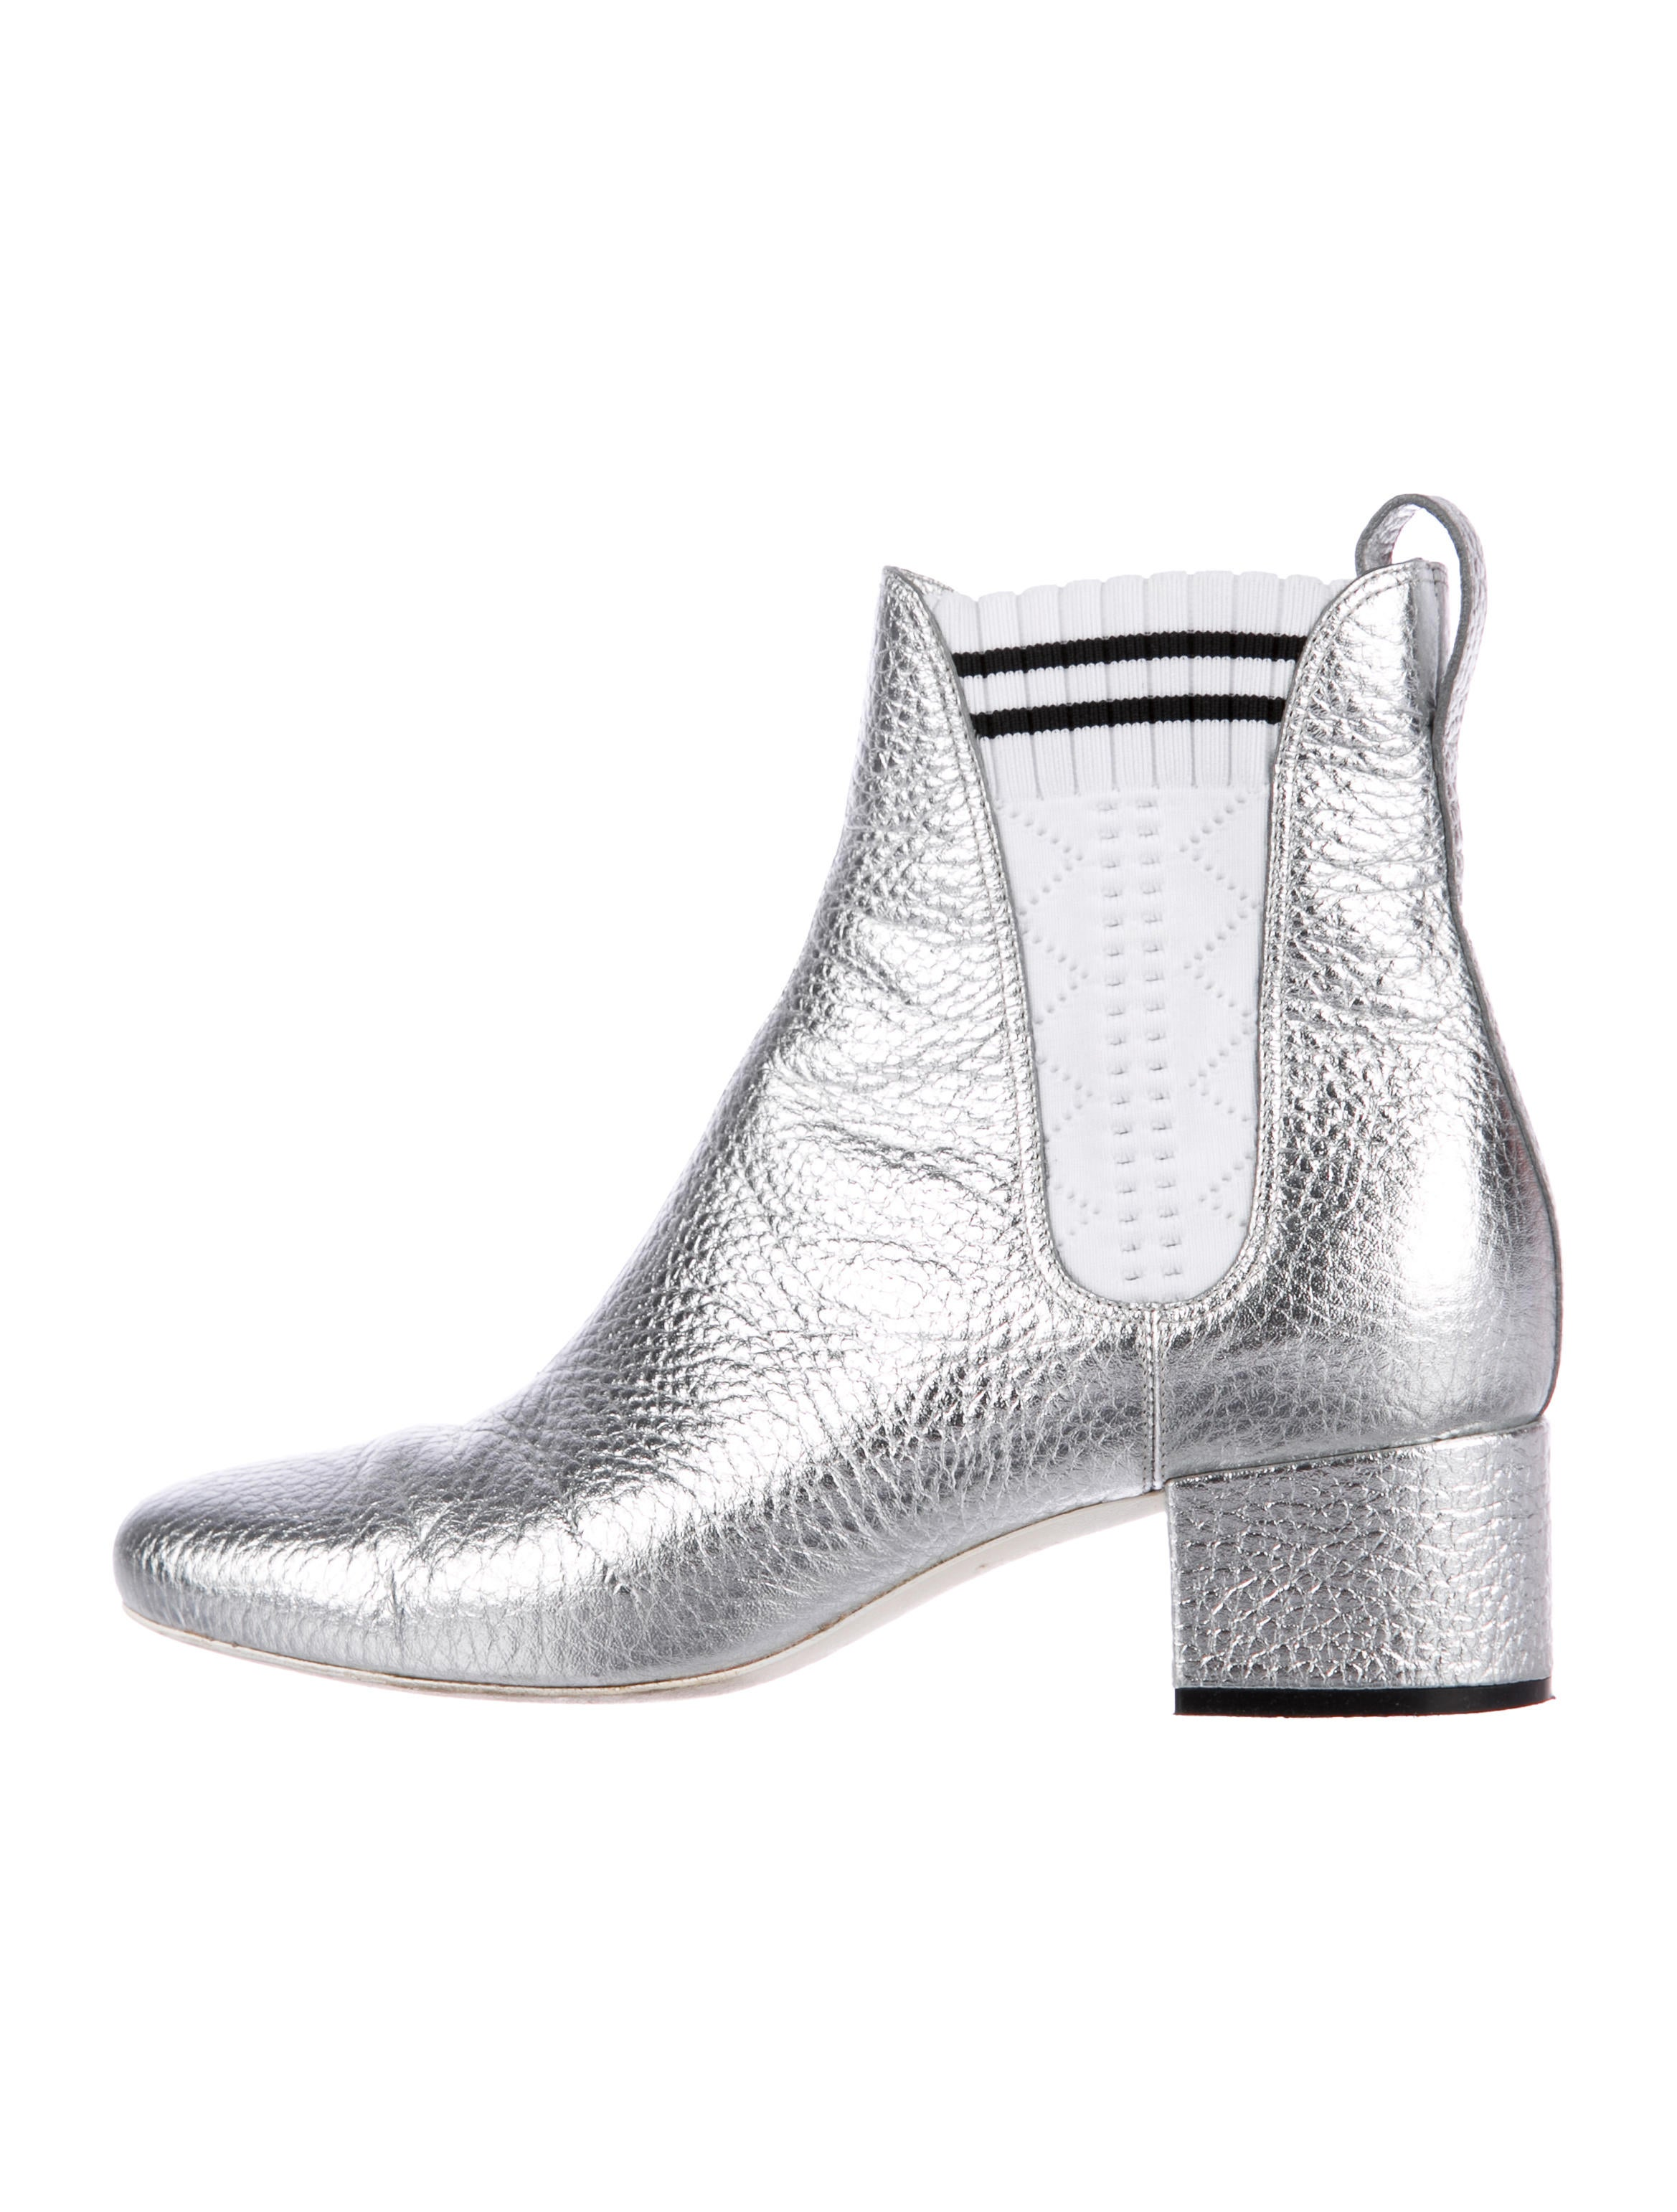 cheap price Fendi 2017 Metallic Ankle Boots buy online with paypal professional cheap price cheap classic cUnWk2fU